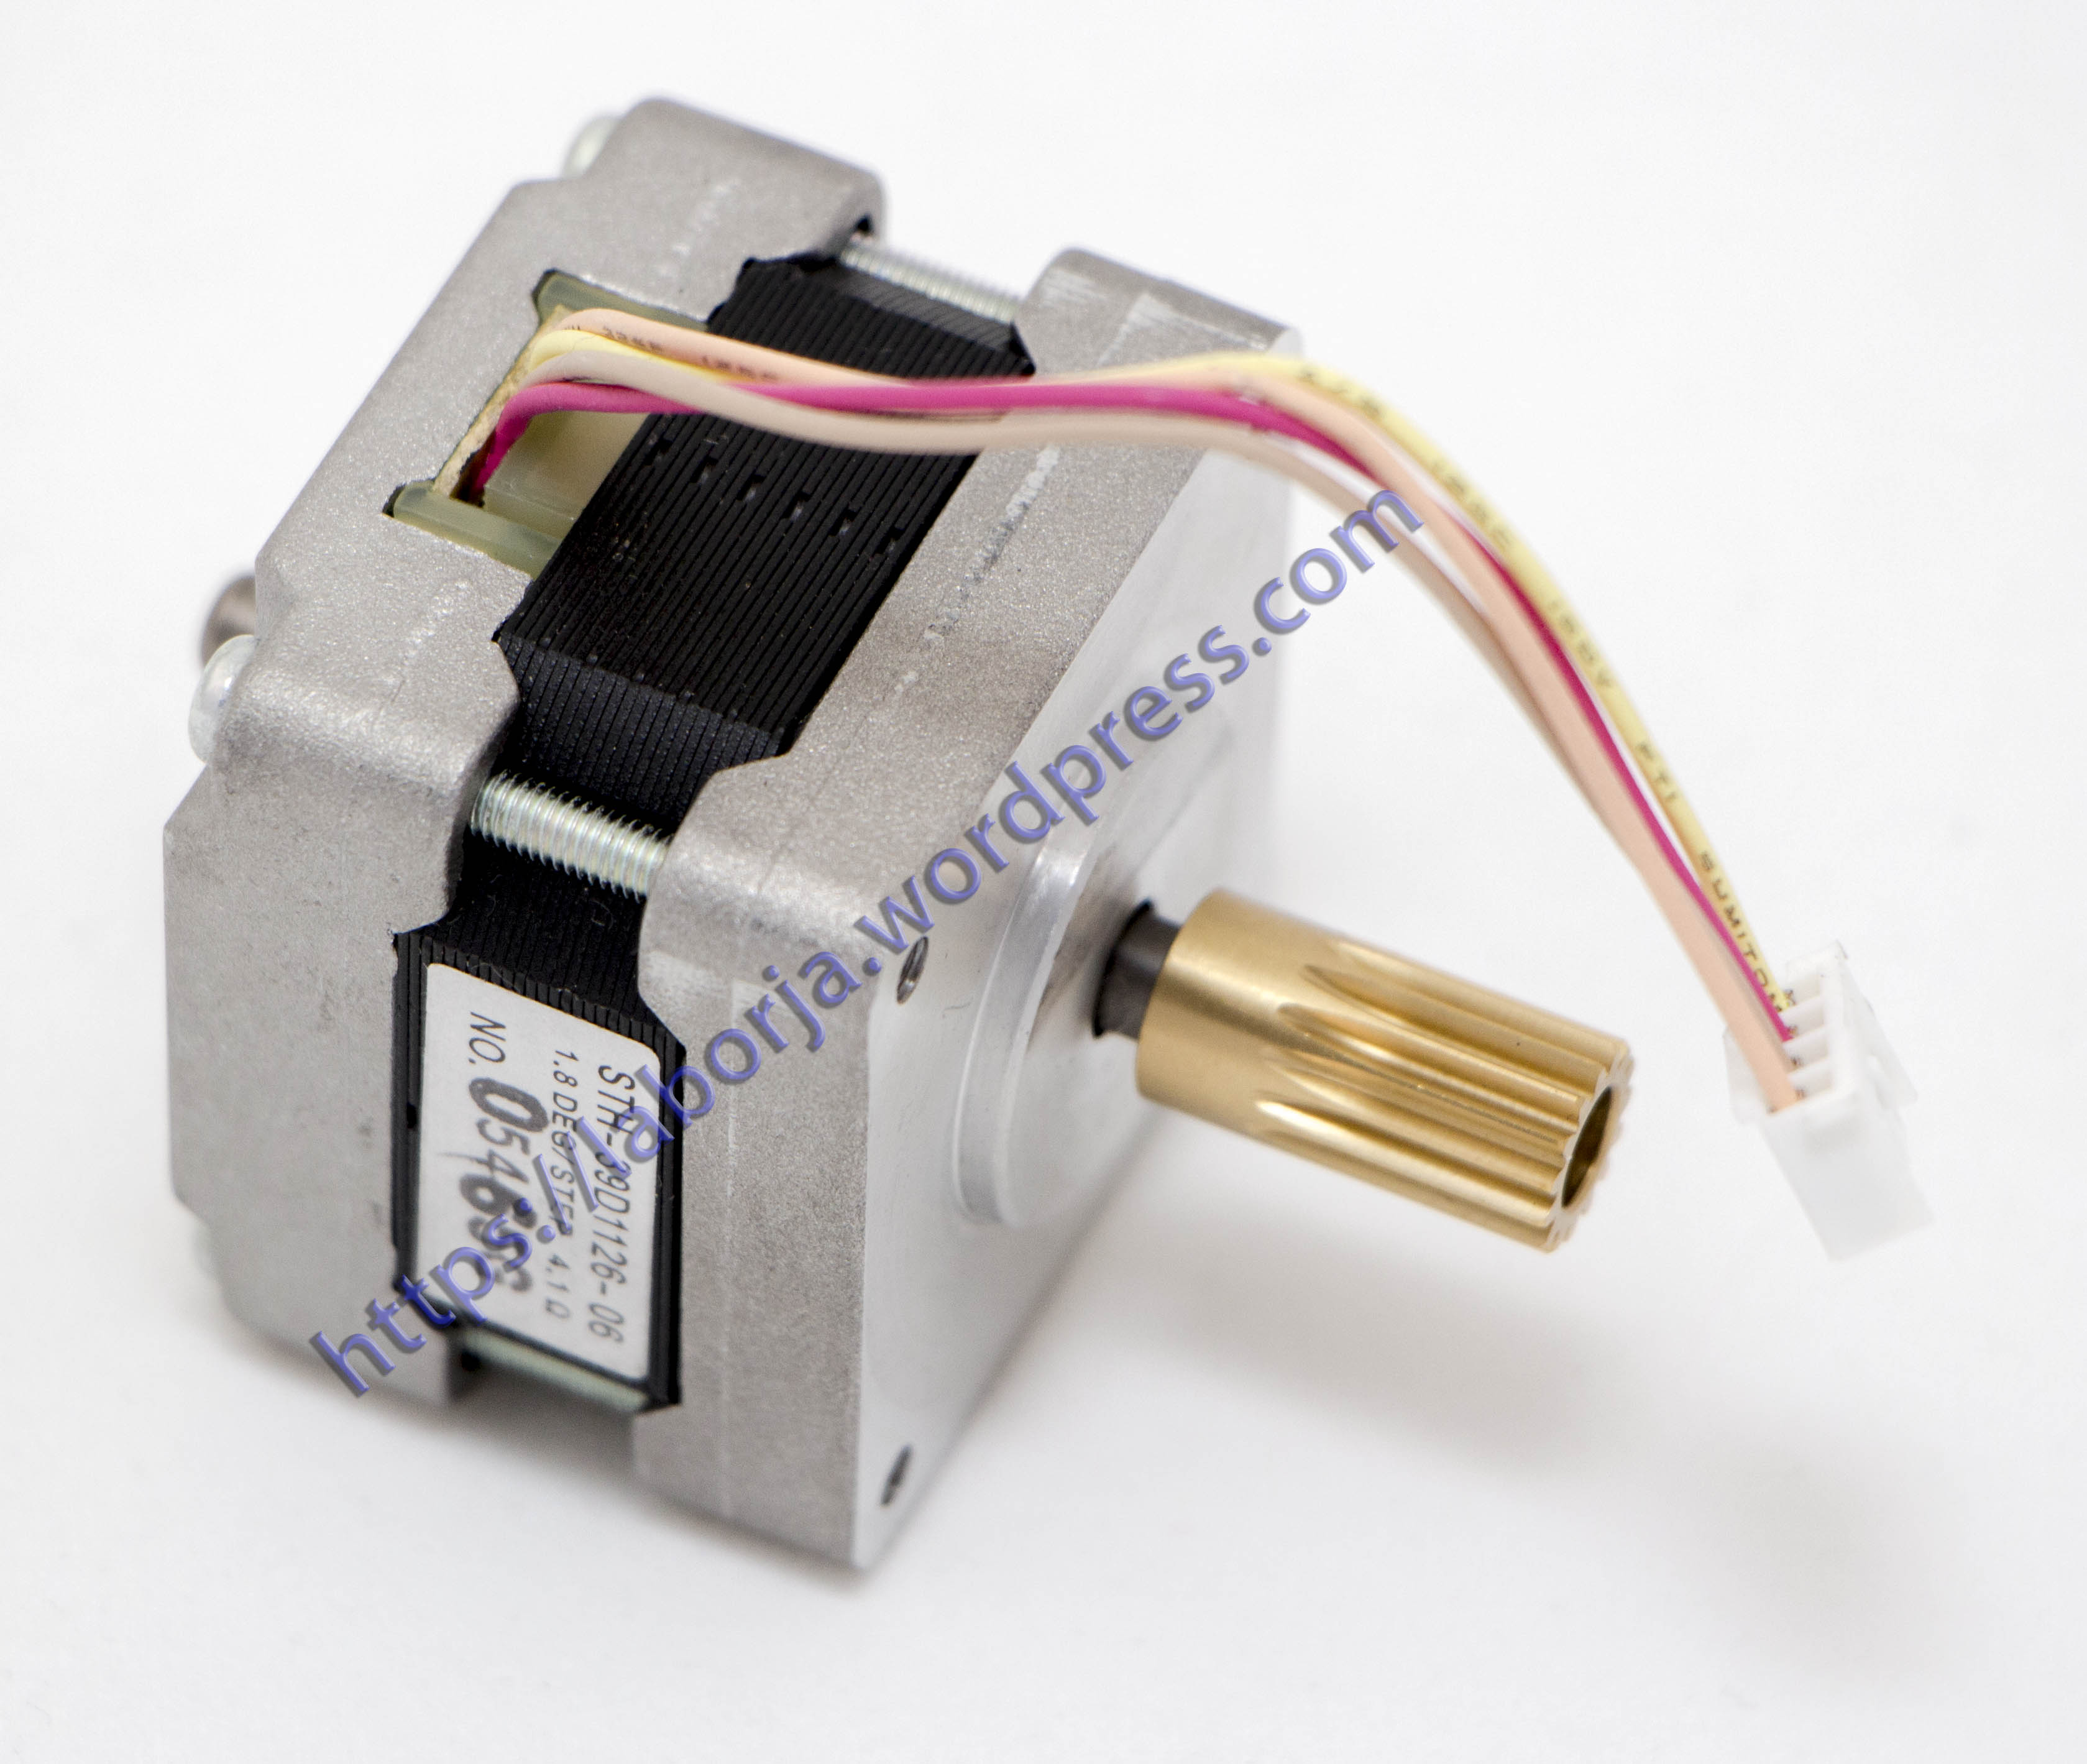 Stepper Motor Sth 39d1126 06 Borja Home Page Wiring Pdf 18deg Step 2 Phase Hybrid Stepping Electric Cnc